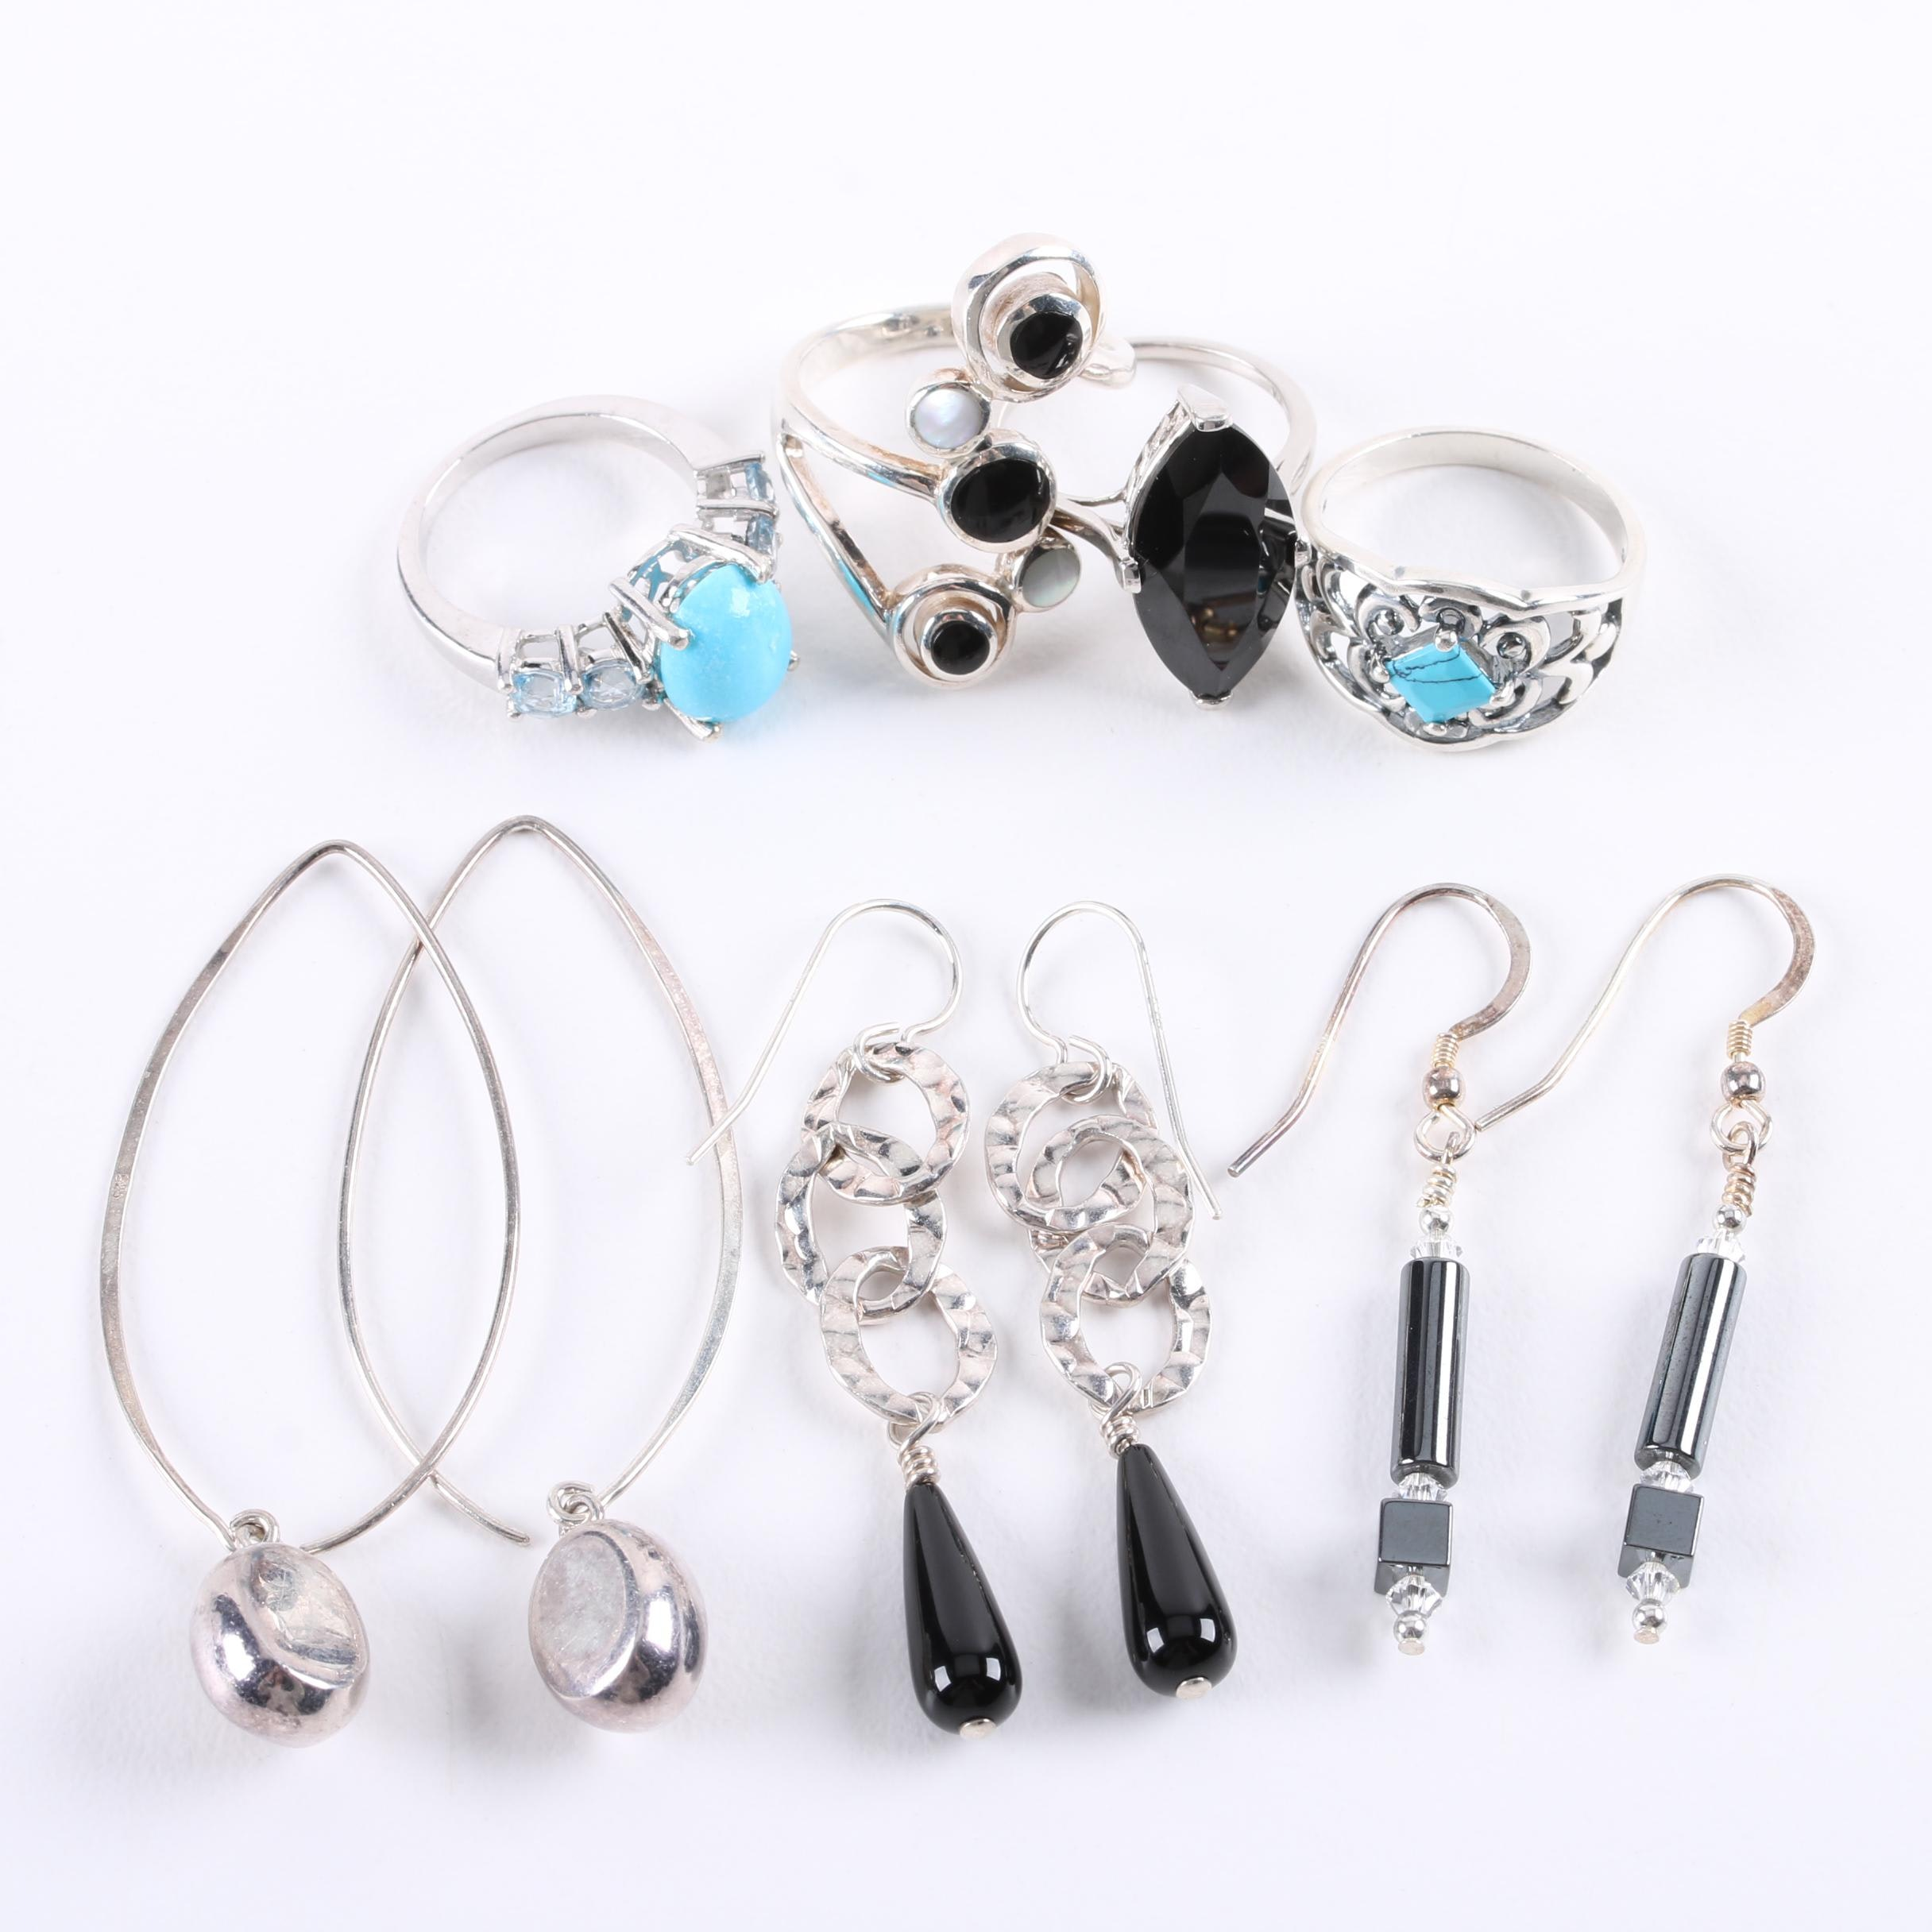 Sterling Silver Jewelry Assortment Including Turquoise and Blue Topaz